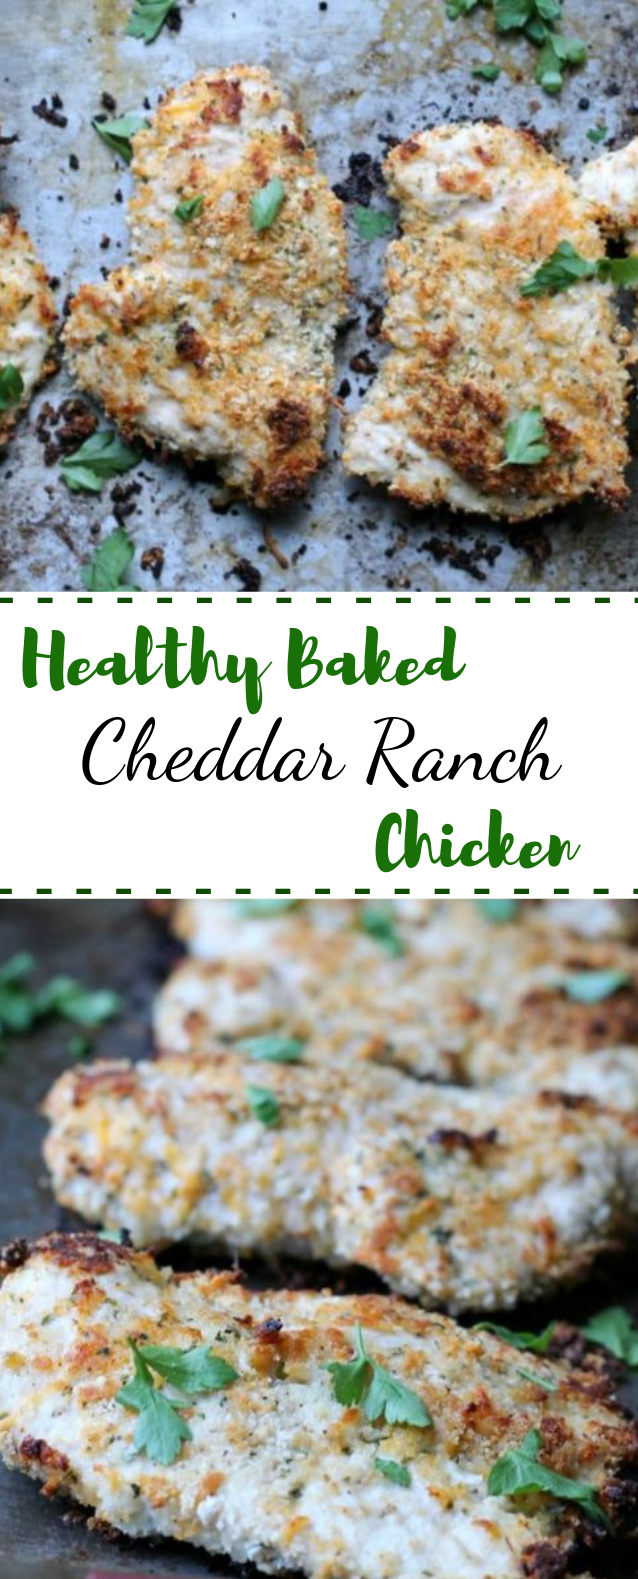 Healthy Baked Cheddar Ranch Chicken #healthy #lowcarb